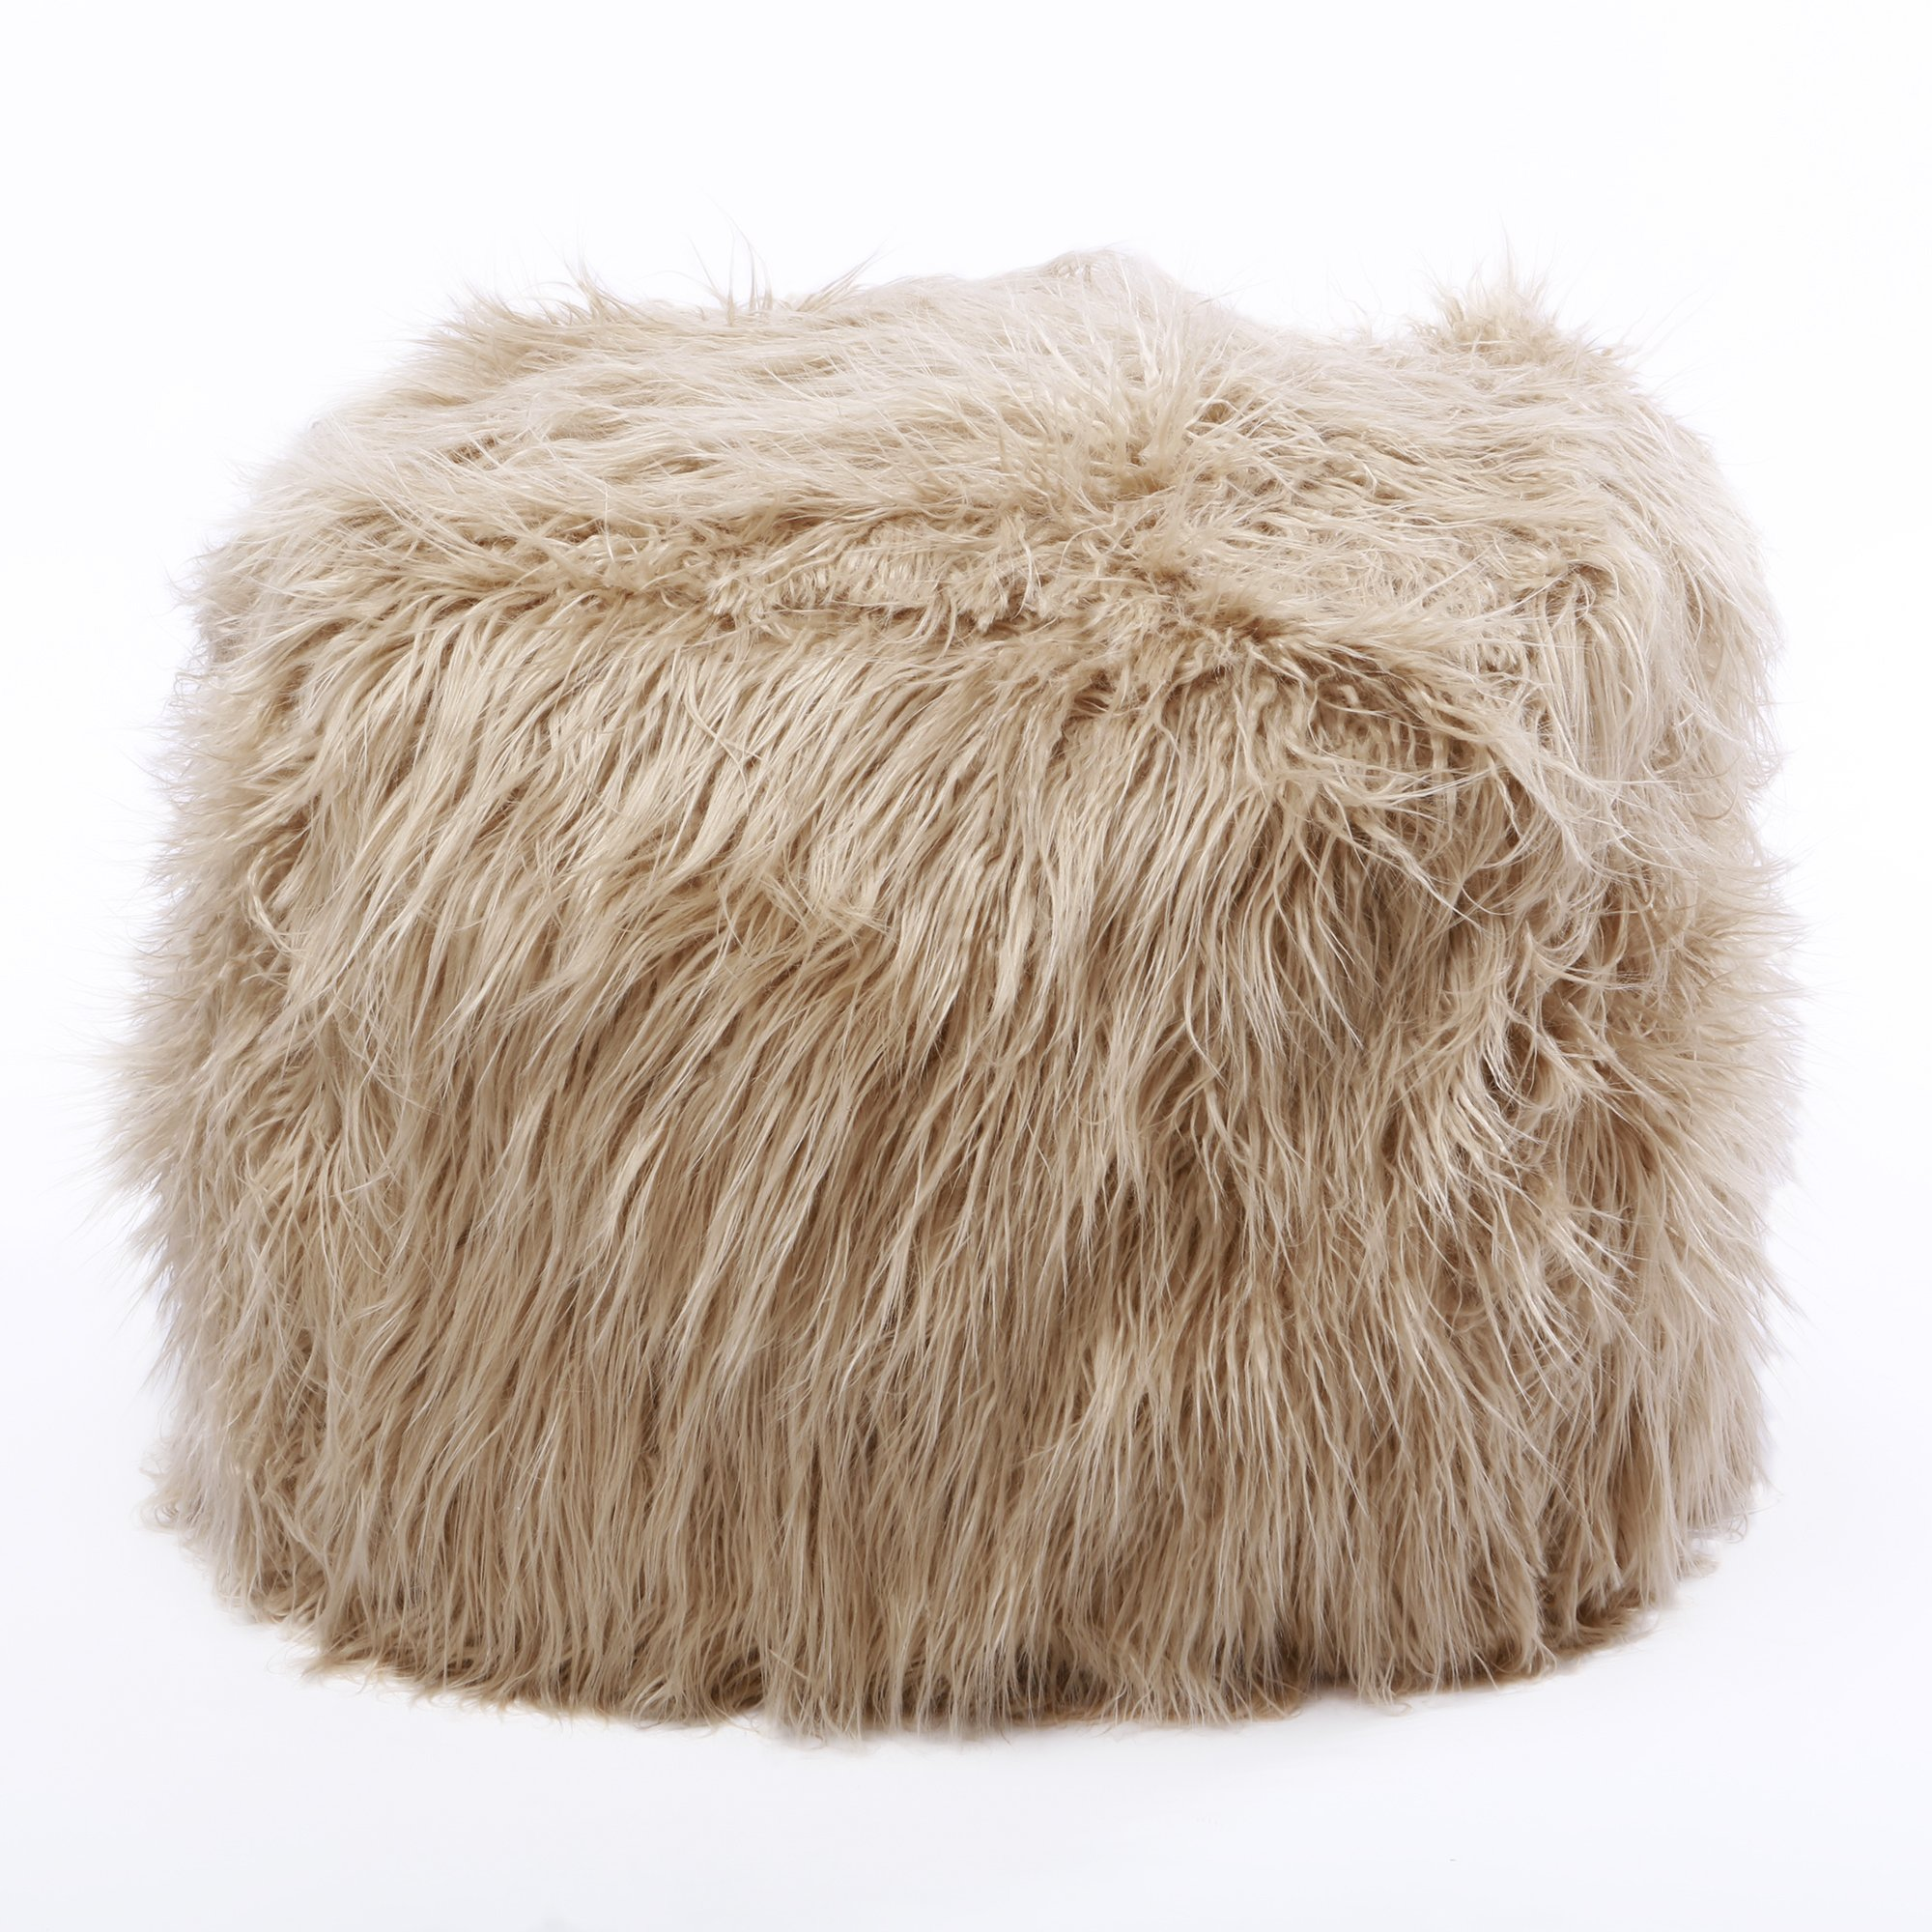 Best Home Fashion Taupe Faux Fur Tibetan Lamb Pouf 18''x18''x18''